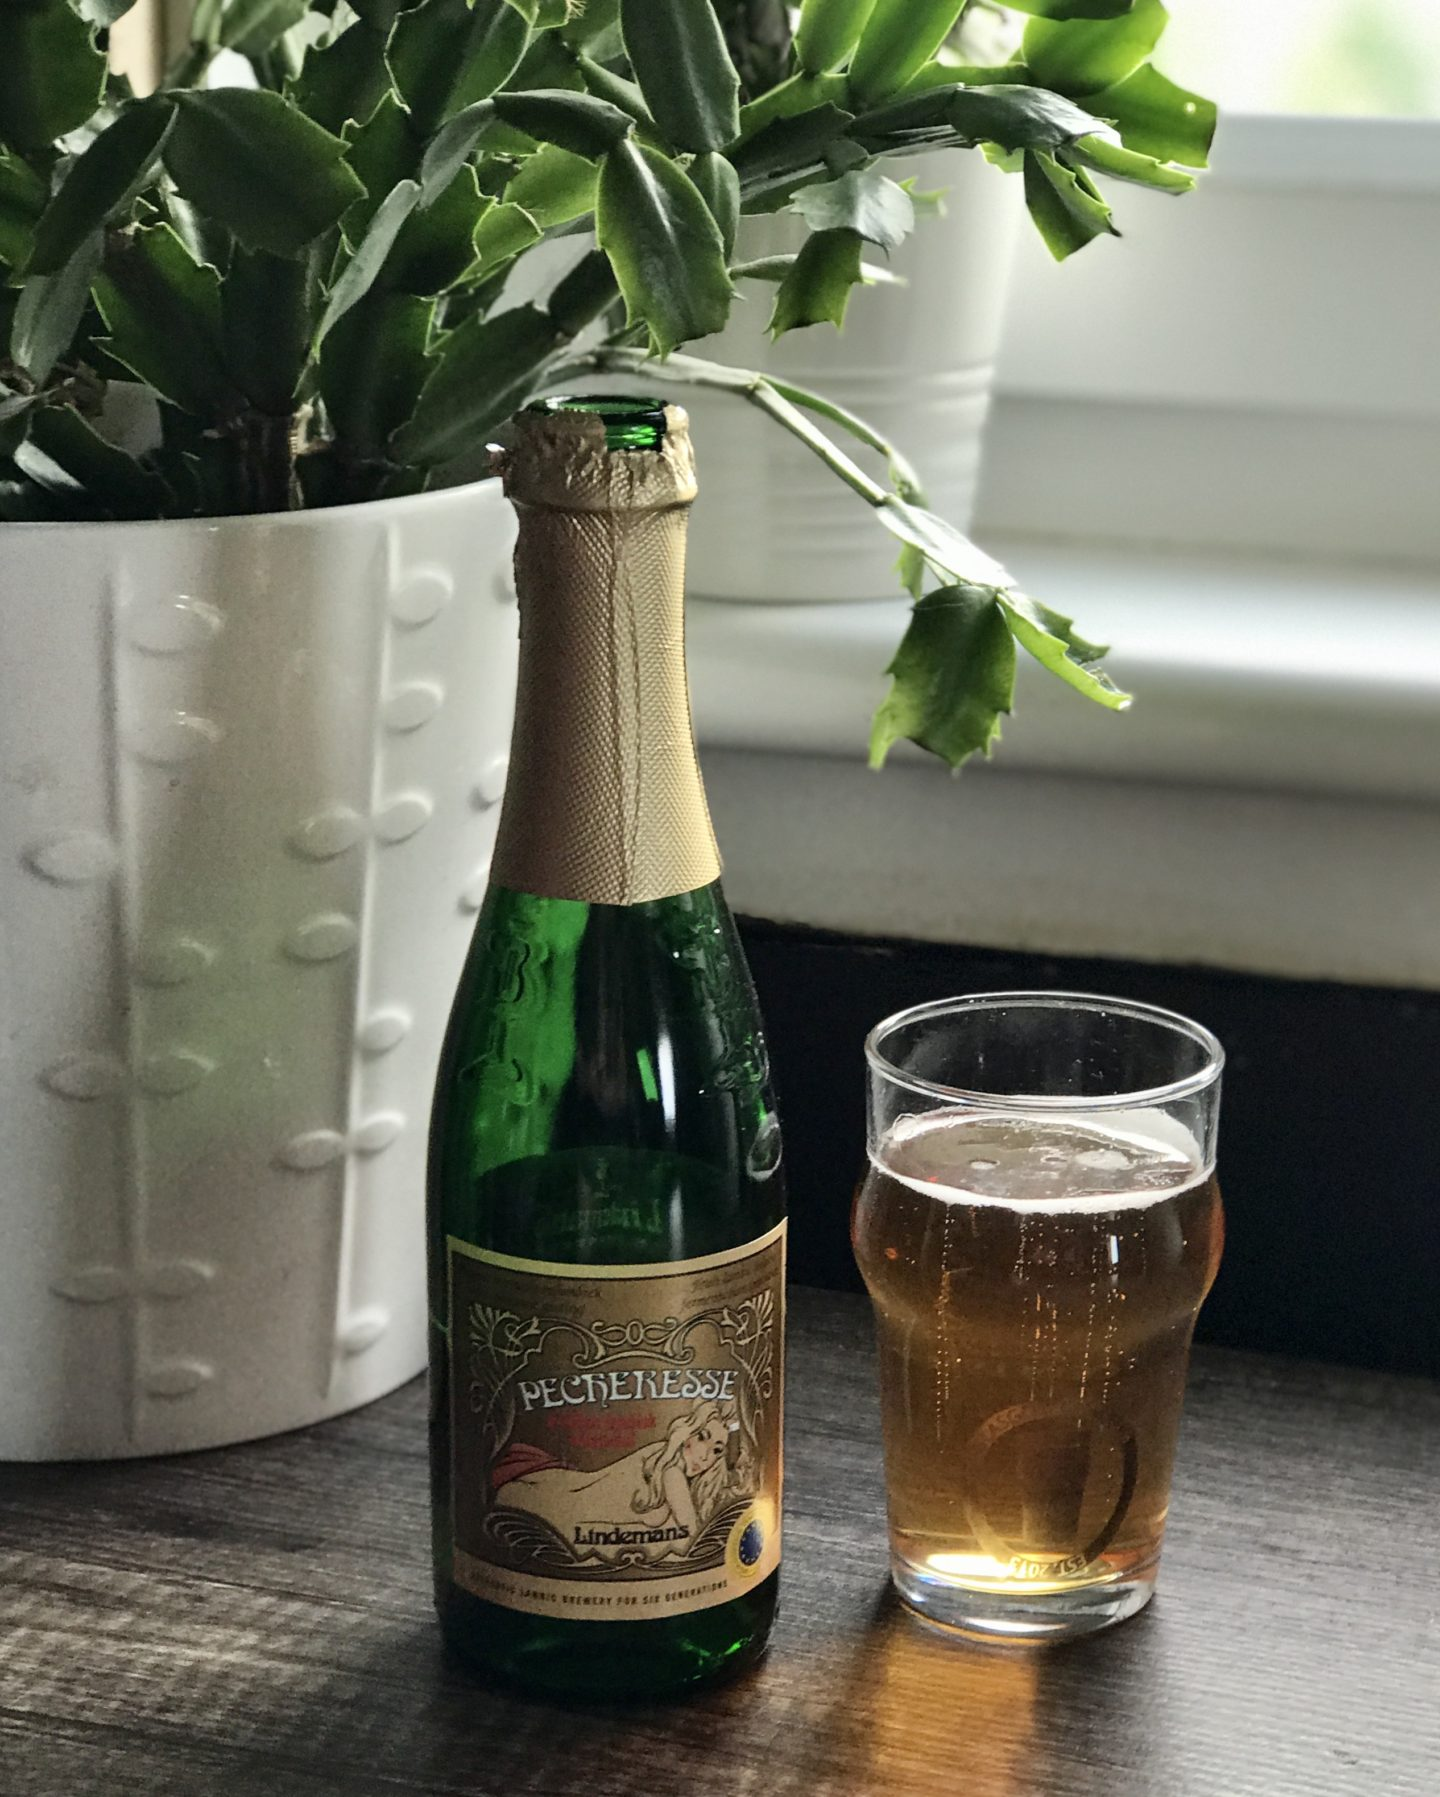 The beer town lindemans peach